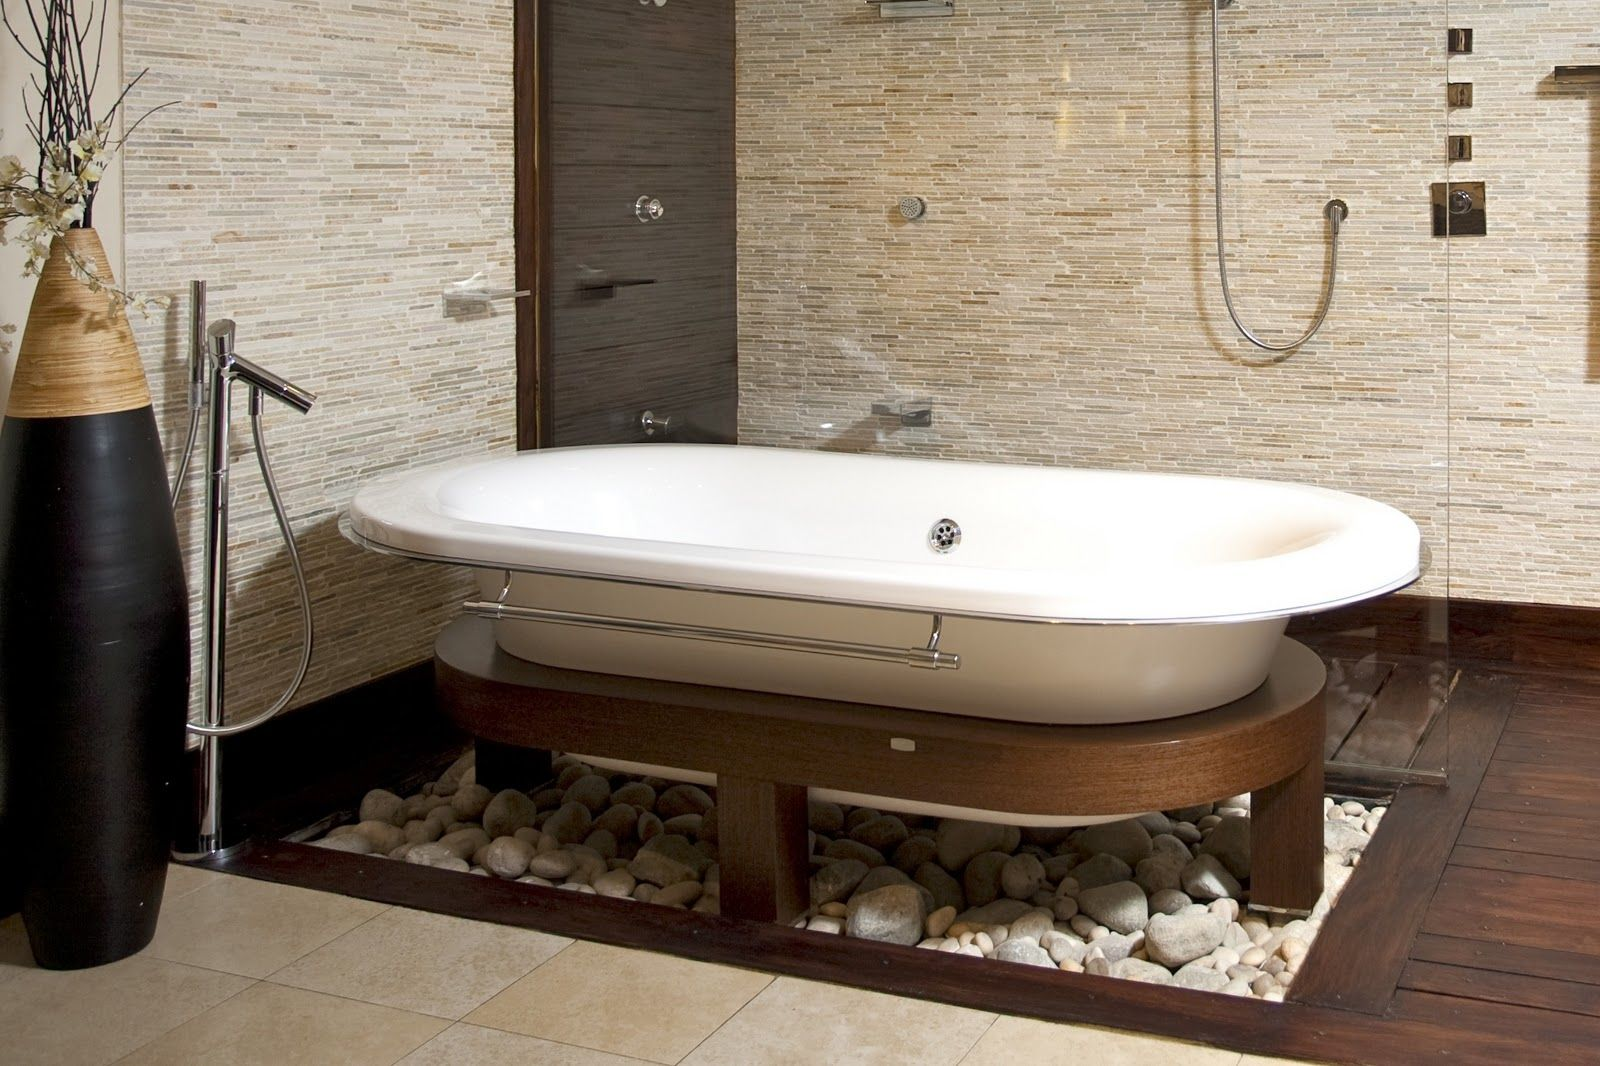 Charming Tub Paint Tall How To Paint A Bathtub Round Paint Bathtub Painting Bathtub Young Bathtub Refinishers Brown How To Paint A Tub